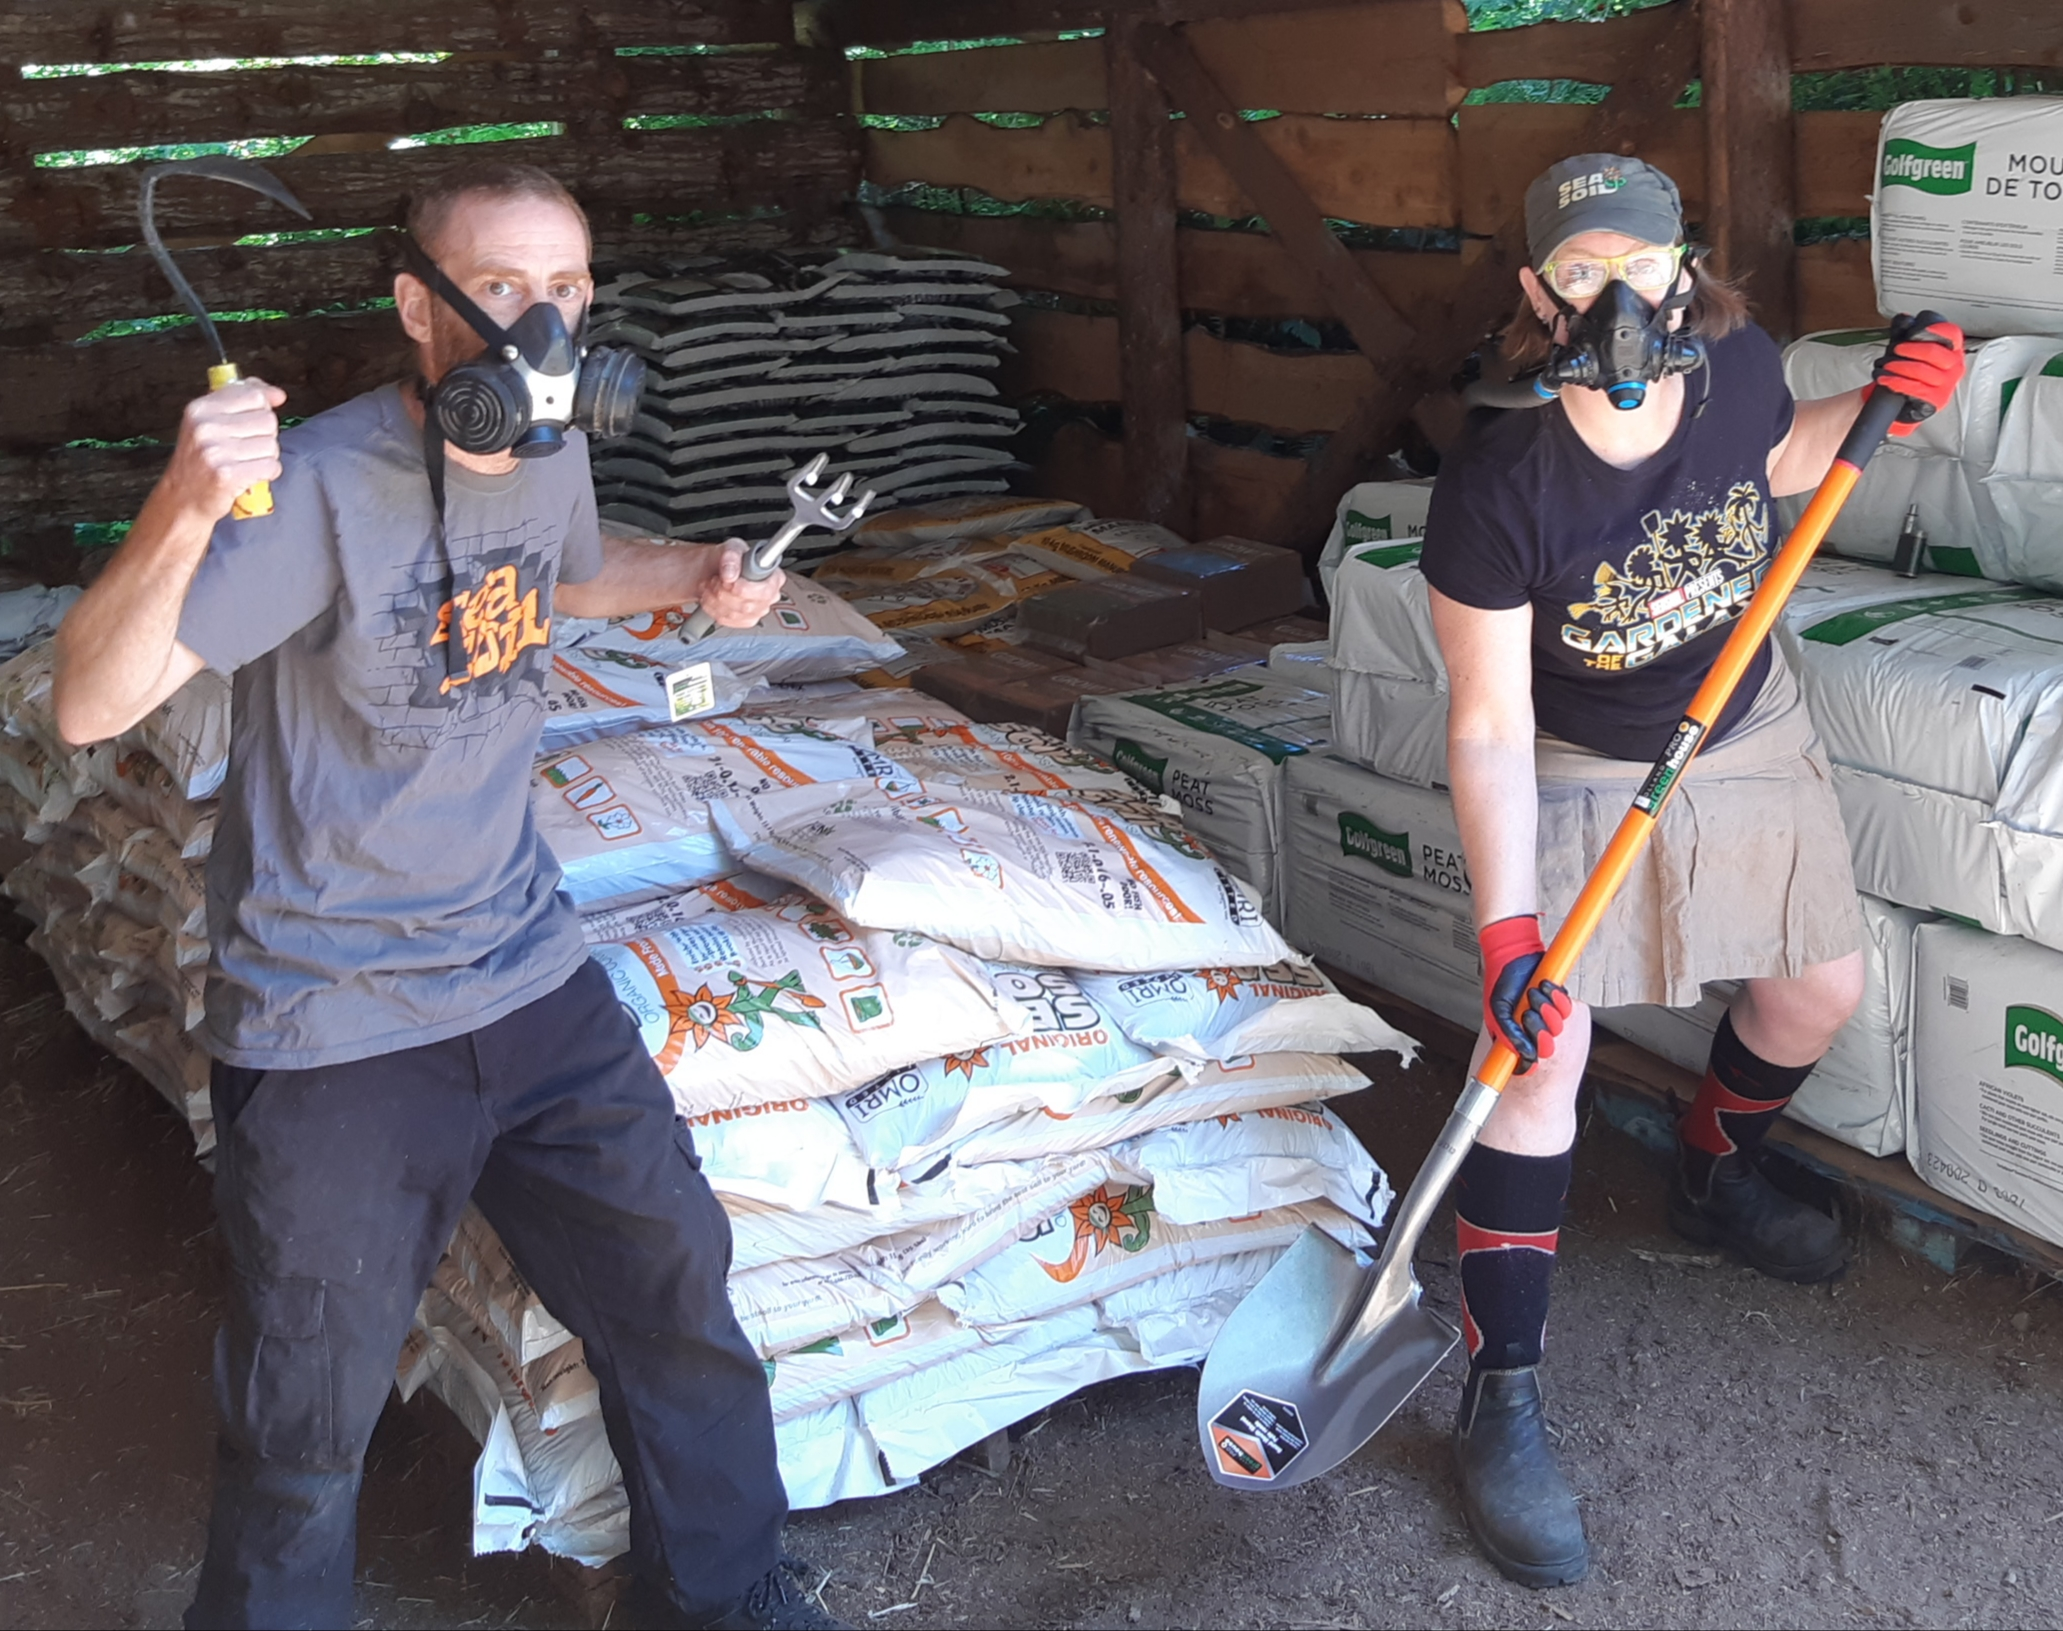 A man and a woman with gardening tools stand in a wooded room with other farm goods and bags of fertilizer behind them.